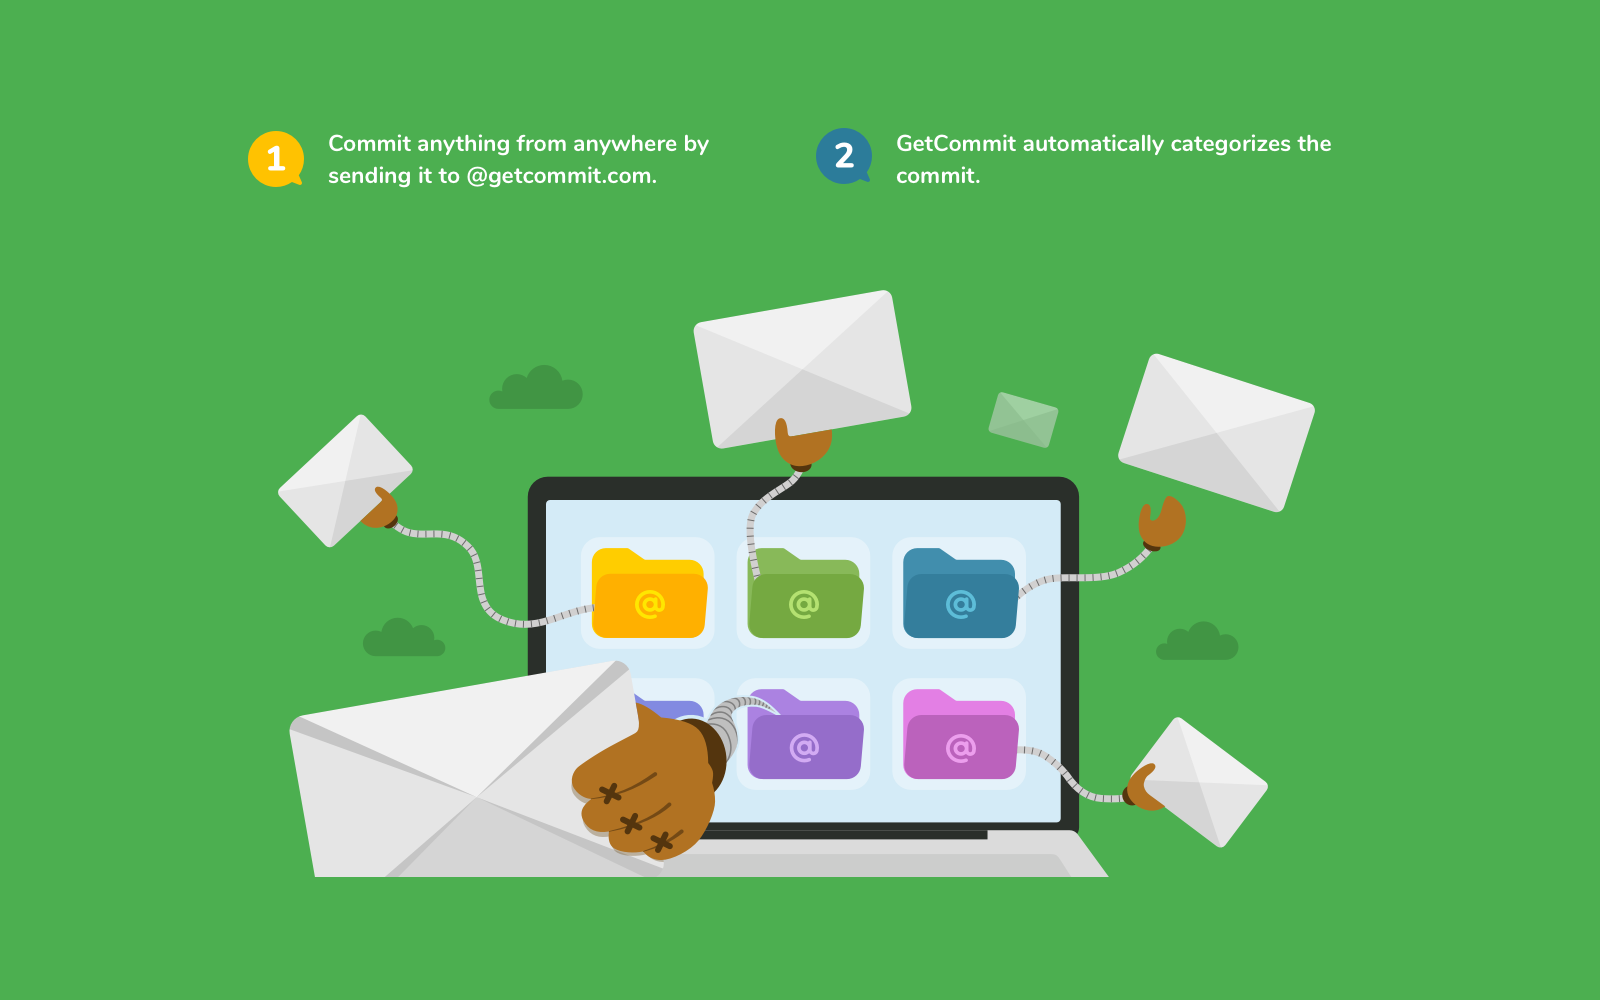 Commit anything to GetCommit, it's as easy as forwarding an email. GetCommit automatically categorizes the information.